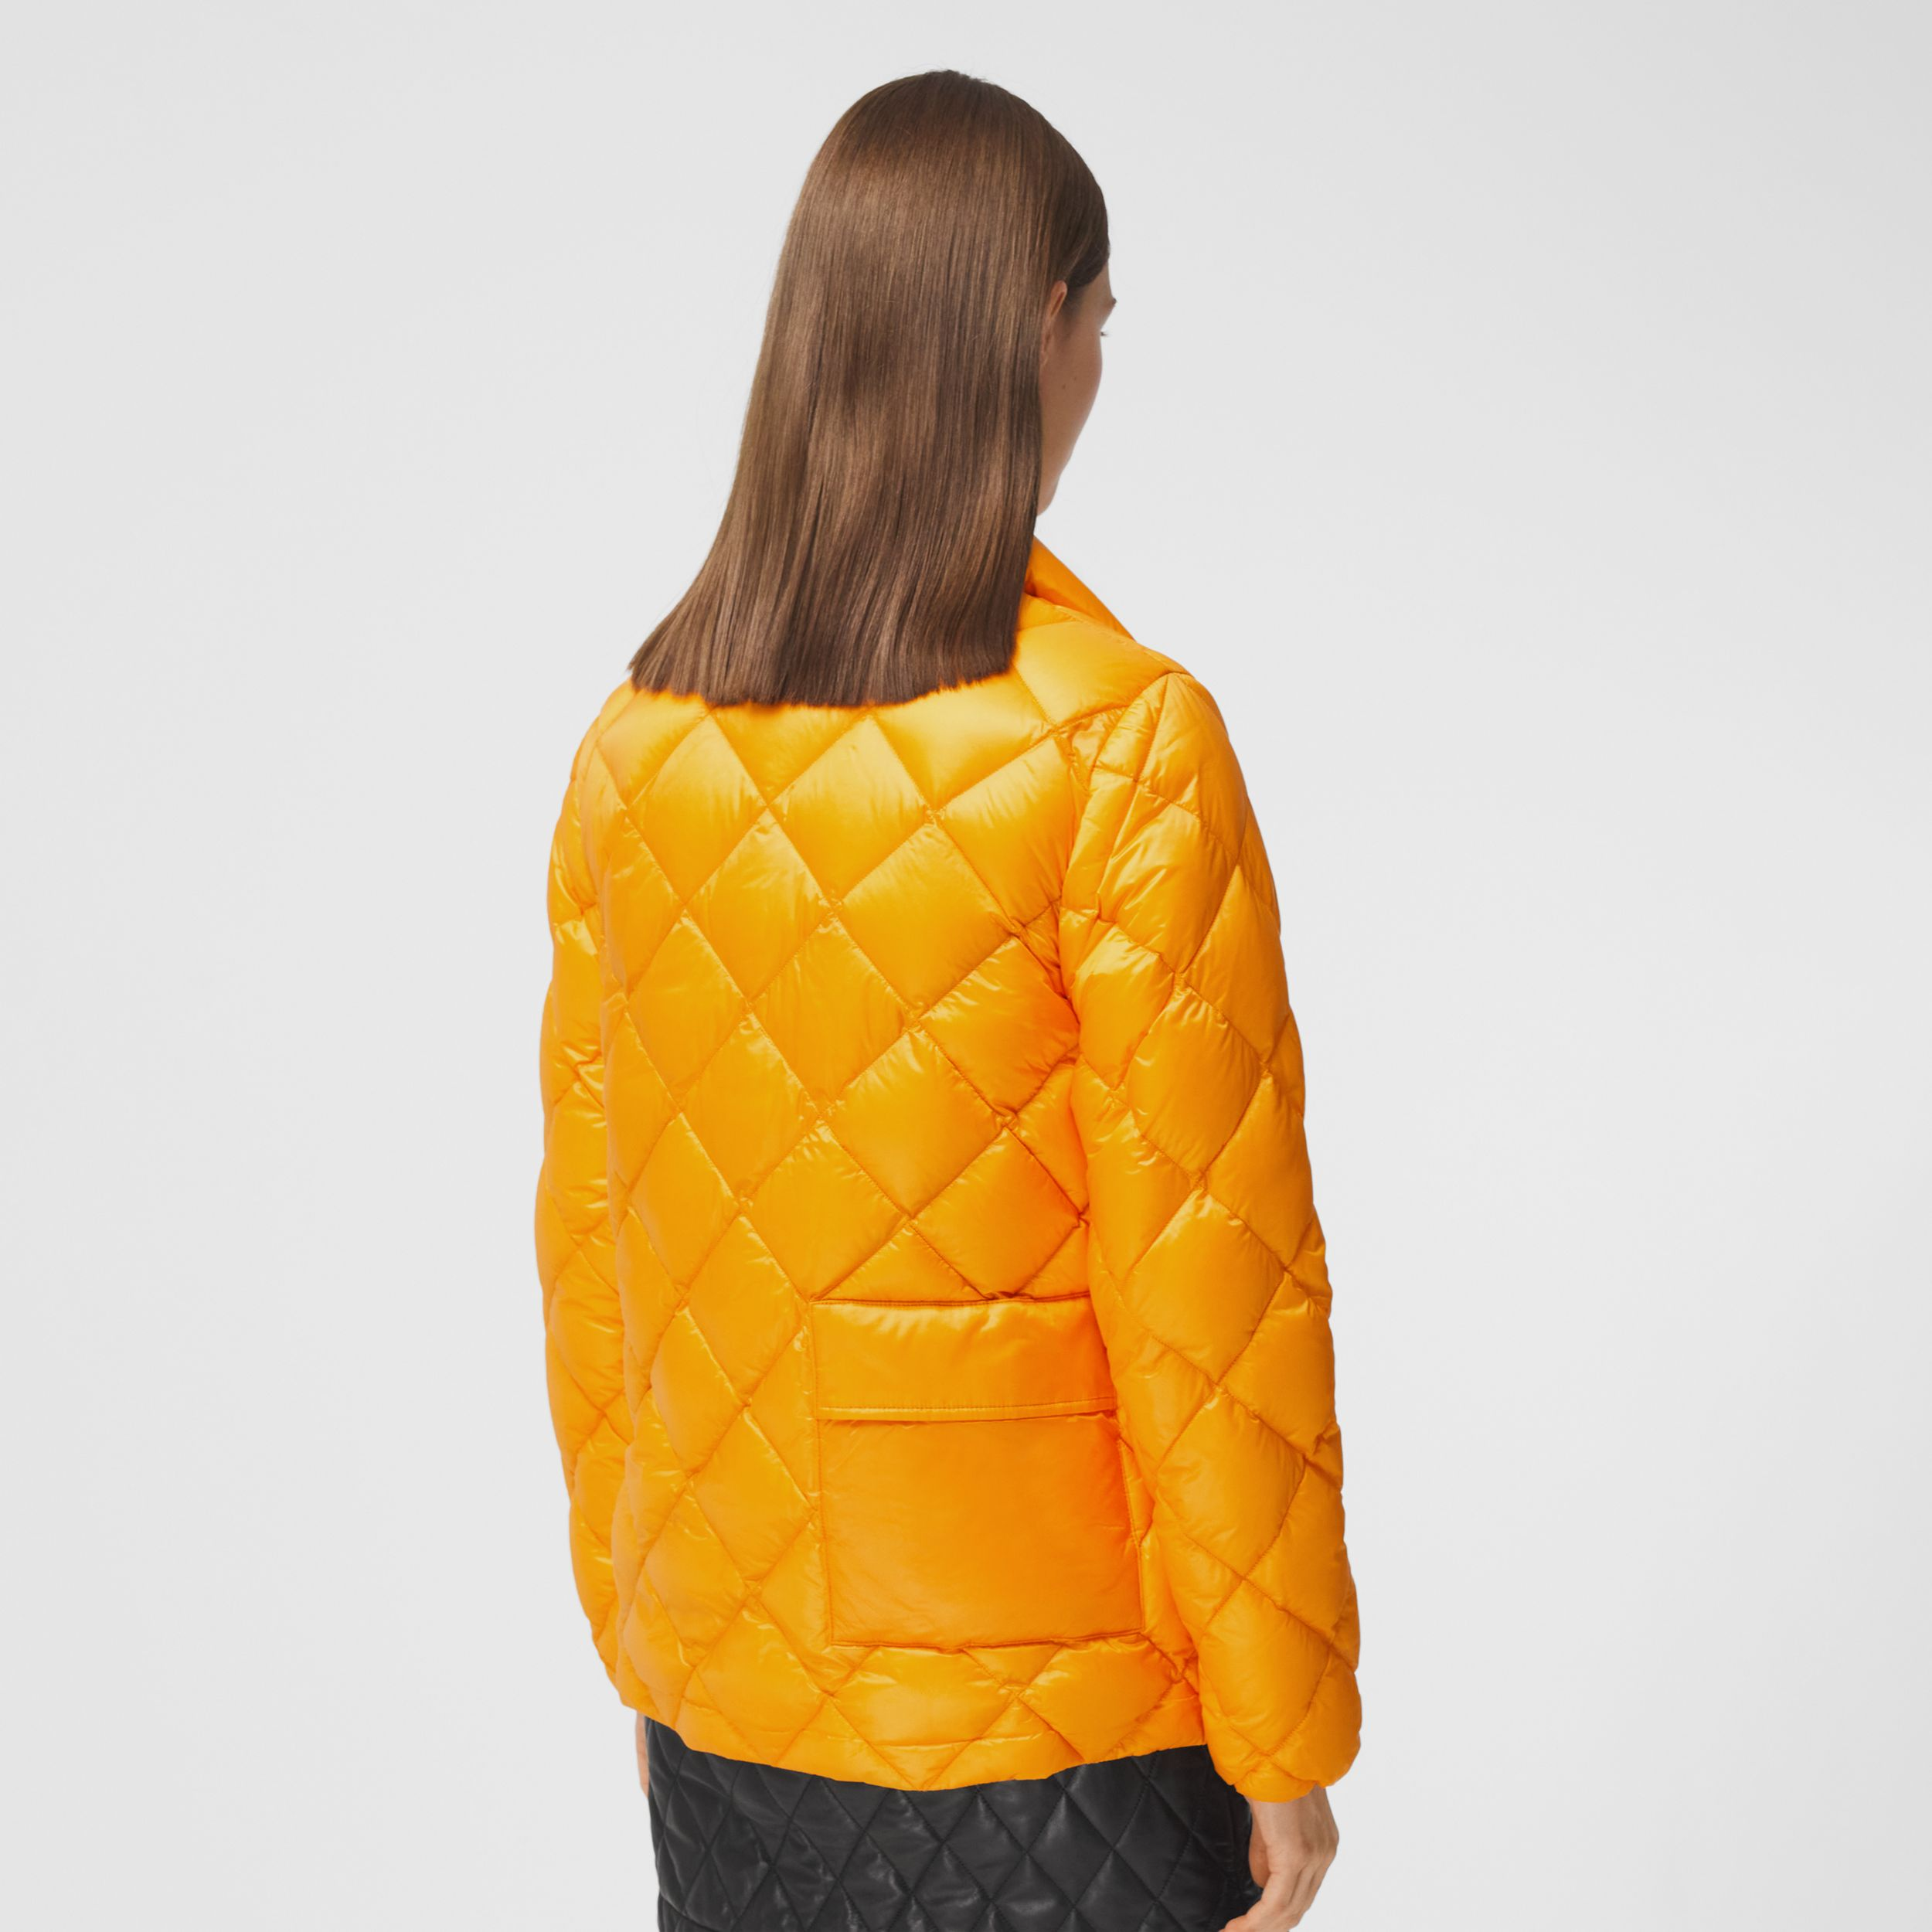 Diamond Quilted Down-filled Jacket in Citrus Orange - Women | Burberry Australia - 3